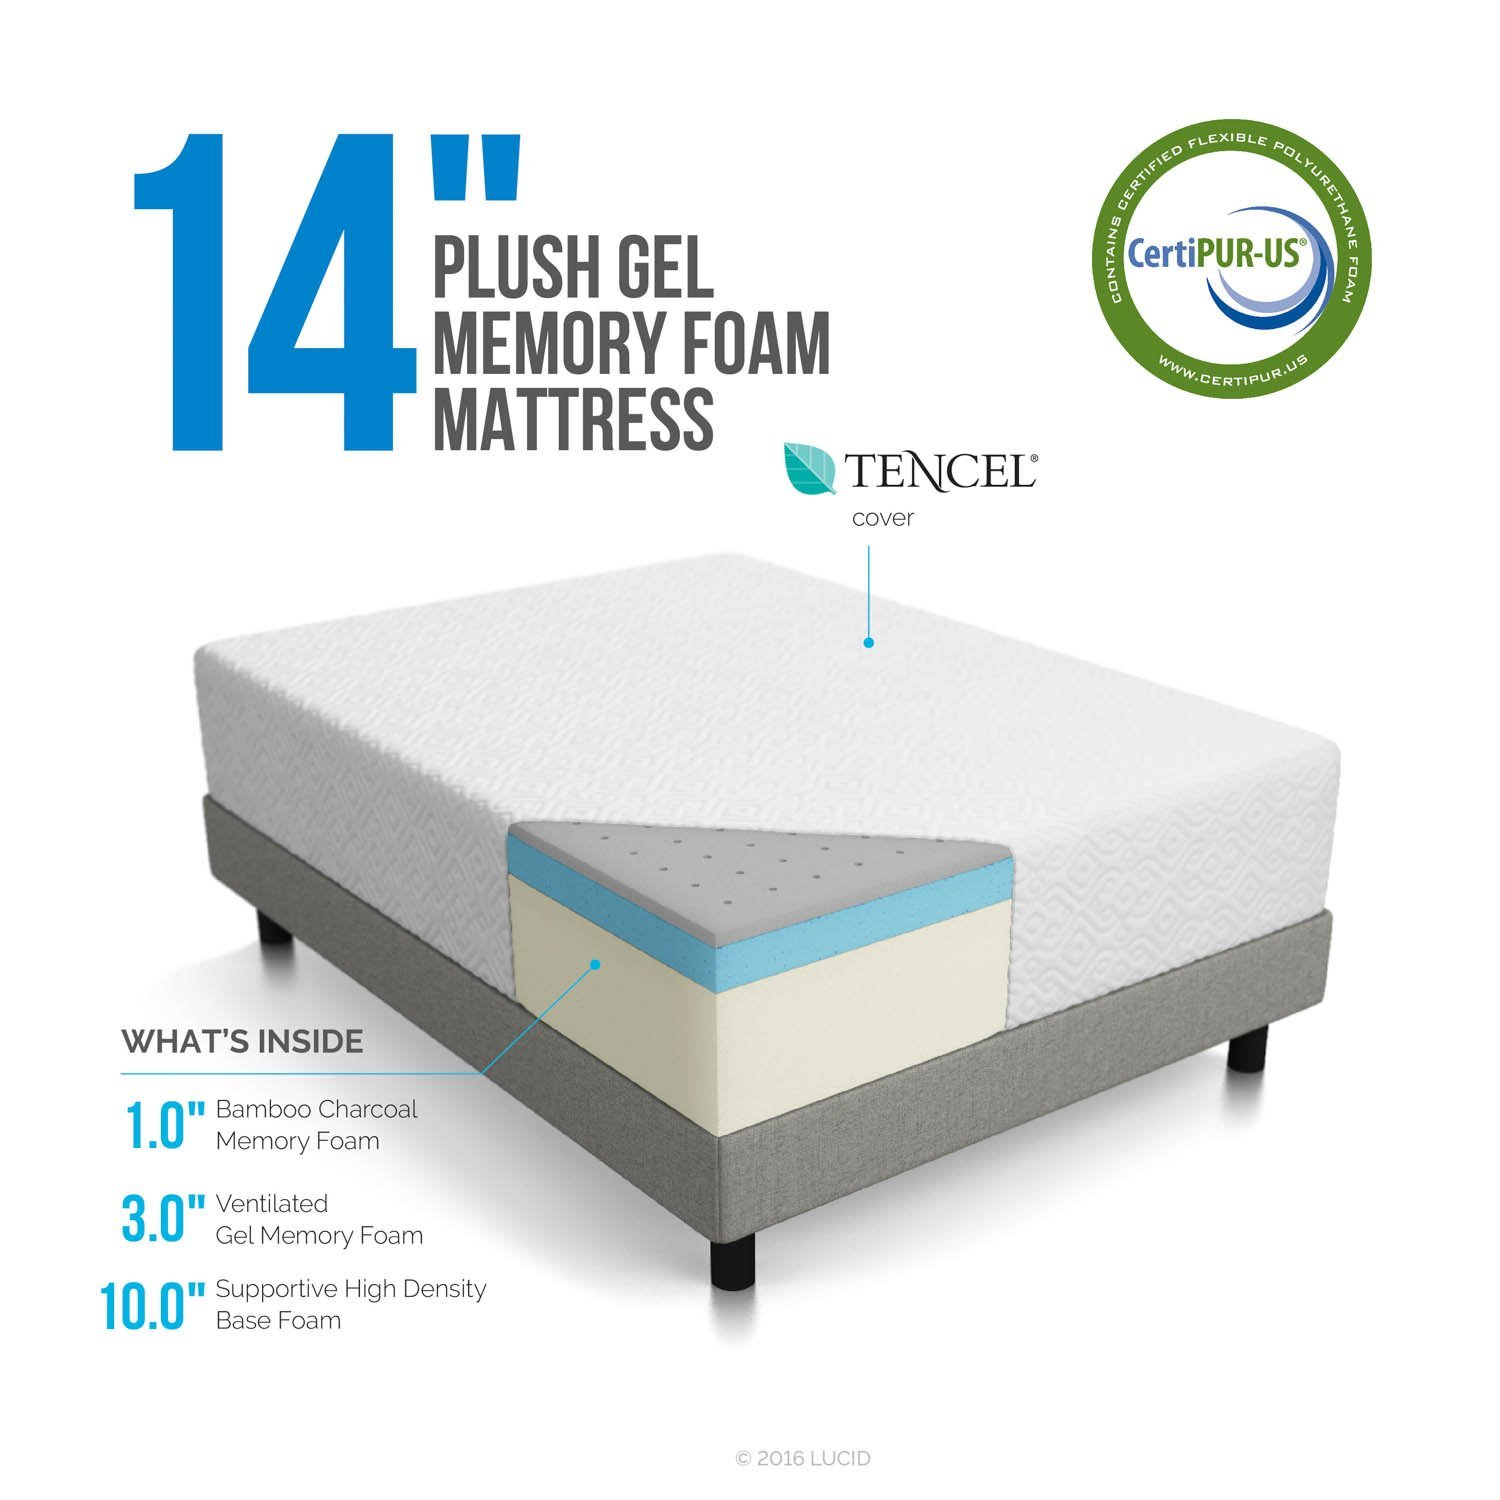 lucid memory foam mattress review – 10 inch, 12 inch & 14 inch